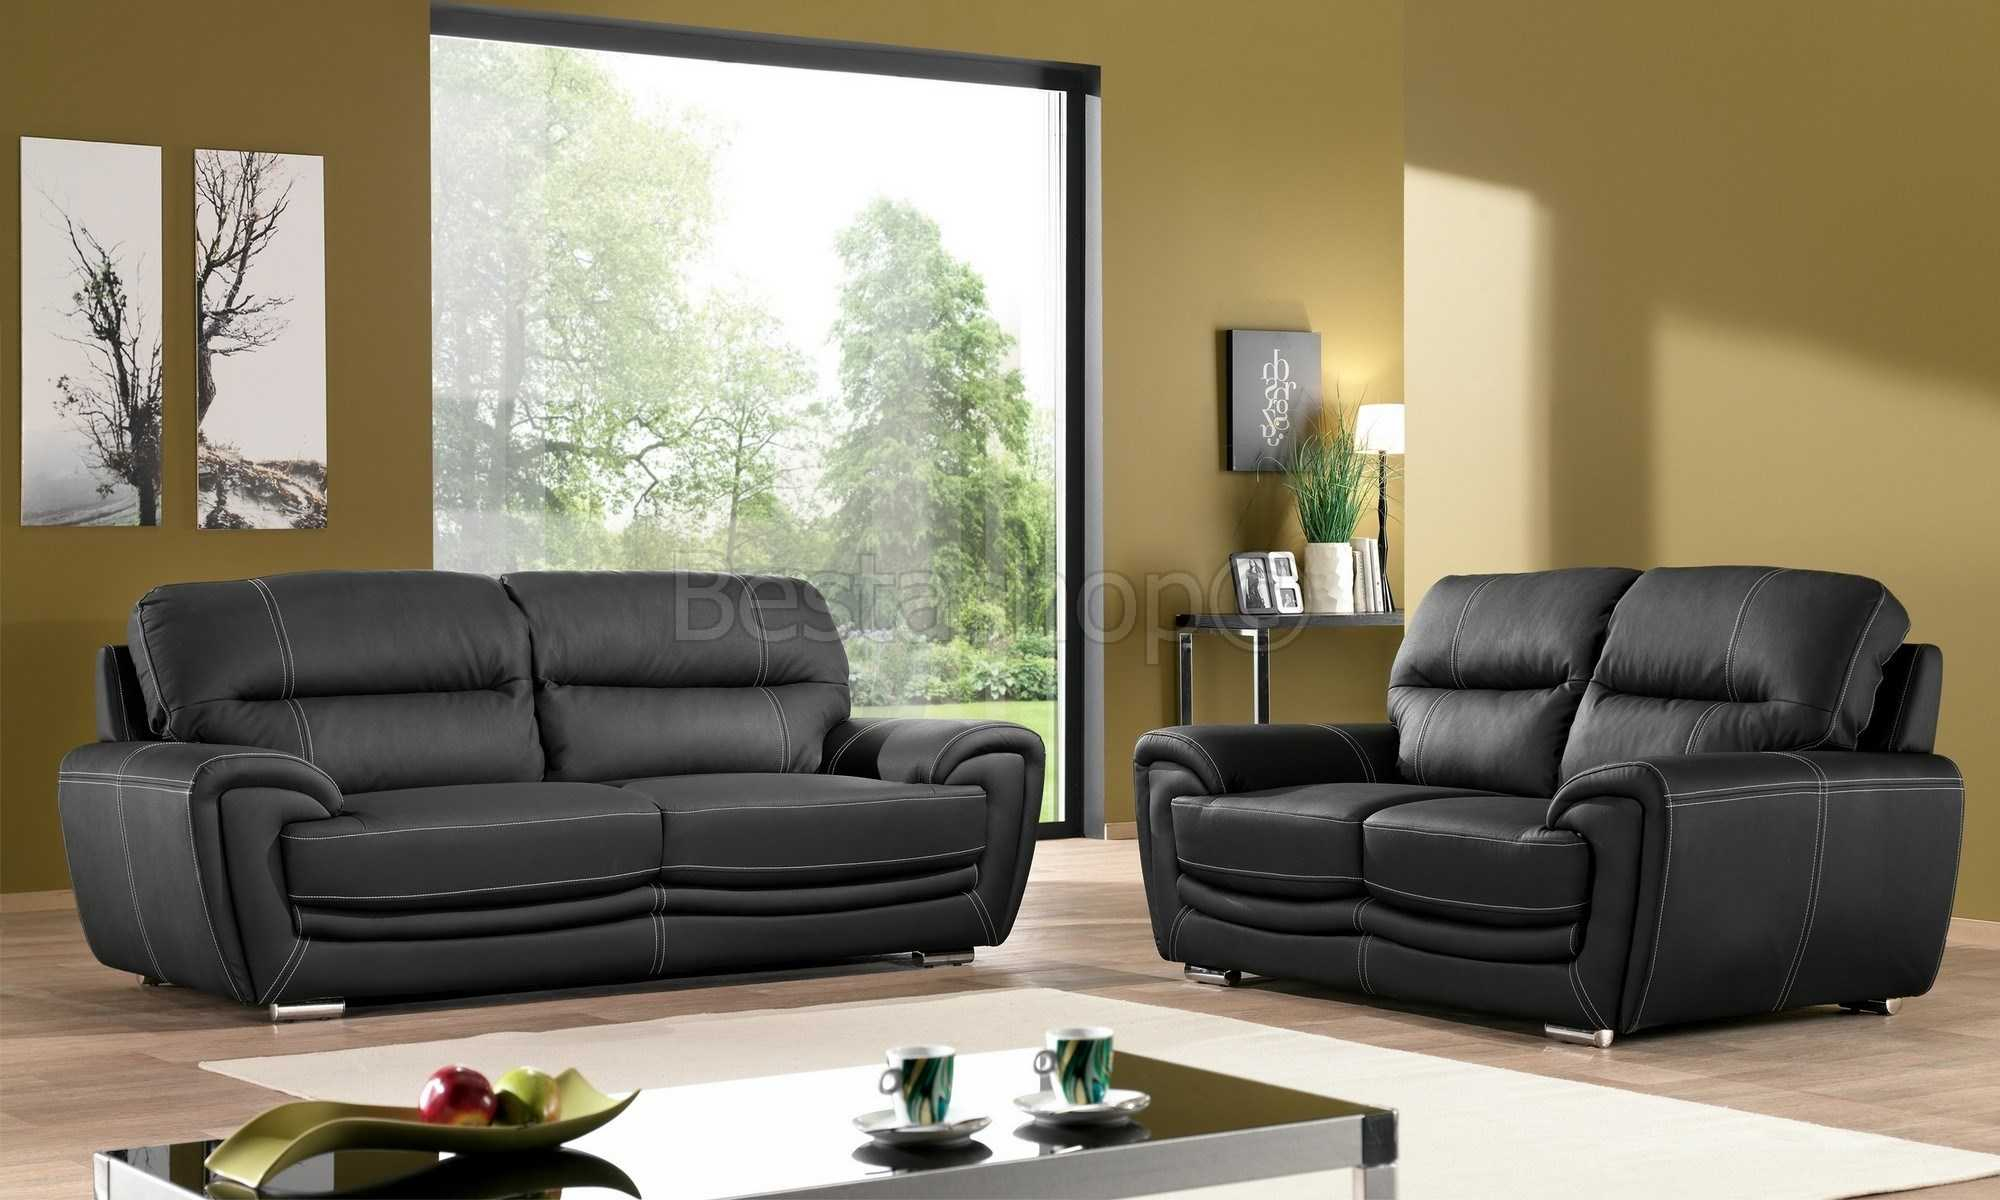 Canapé Simili Cuir but Beau Collection Canap Convertible 3 Places Conforama 33 Canape Marina Luxe Lit 28